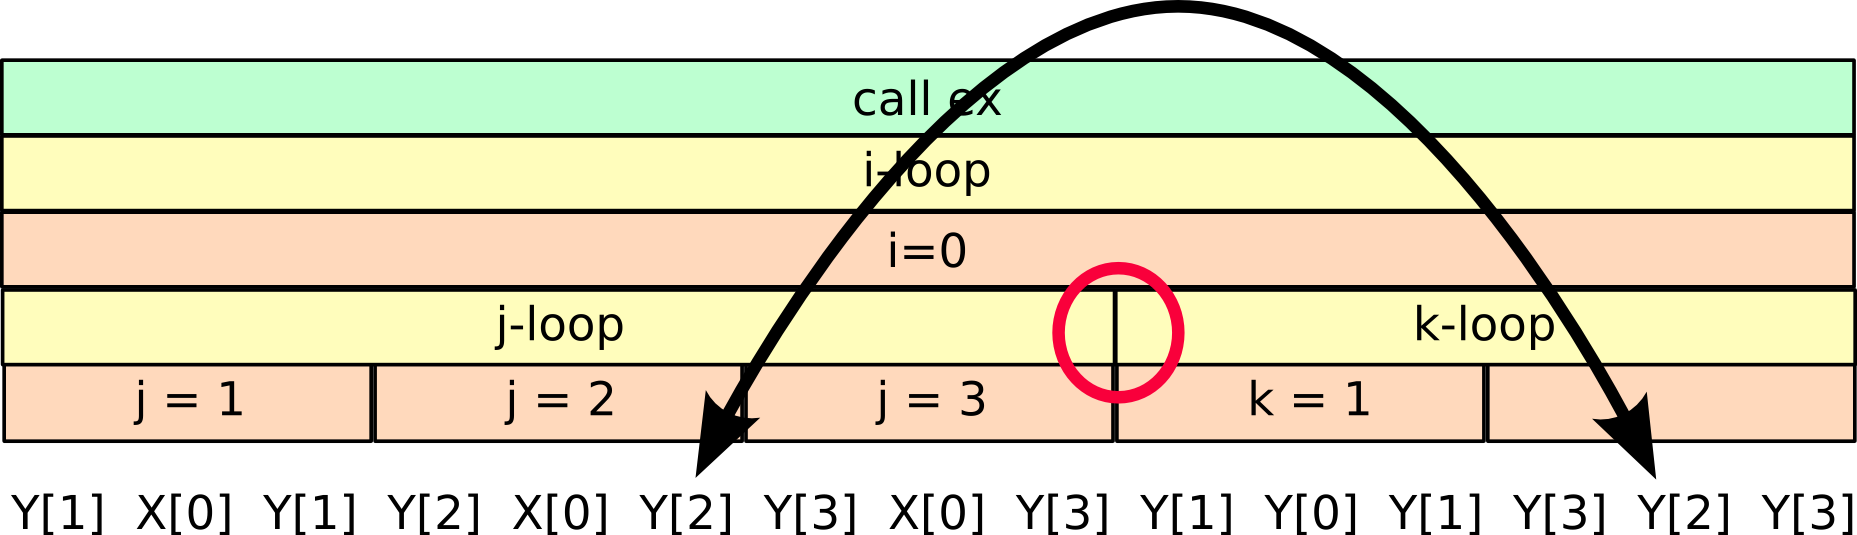 example_mot3b_function_loop_hierachy.png